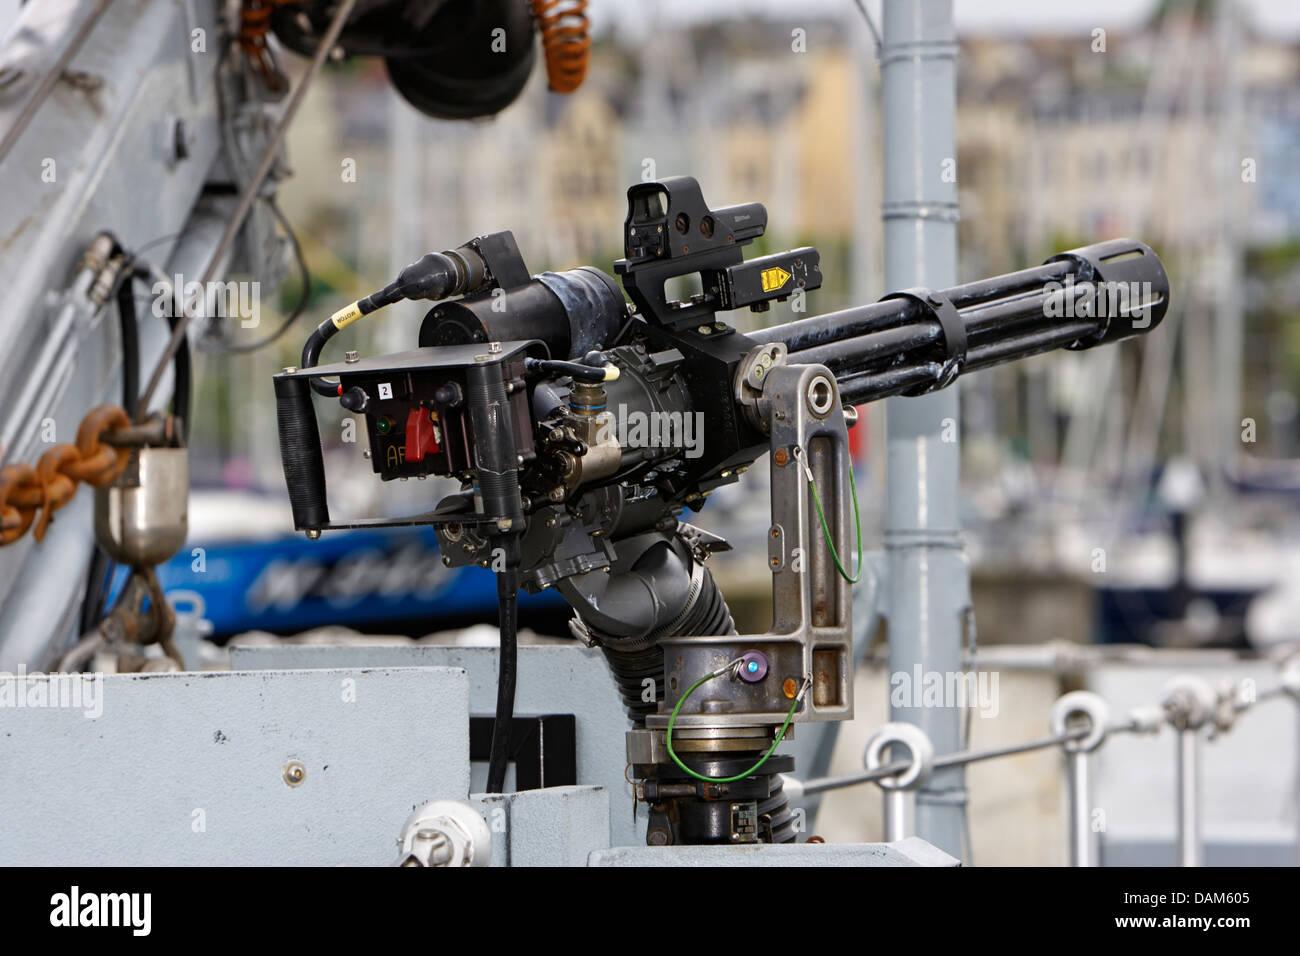 minigun mounted as close in weapons protection against small boat attacks british royal navy warship - Stock Image